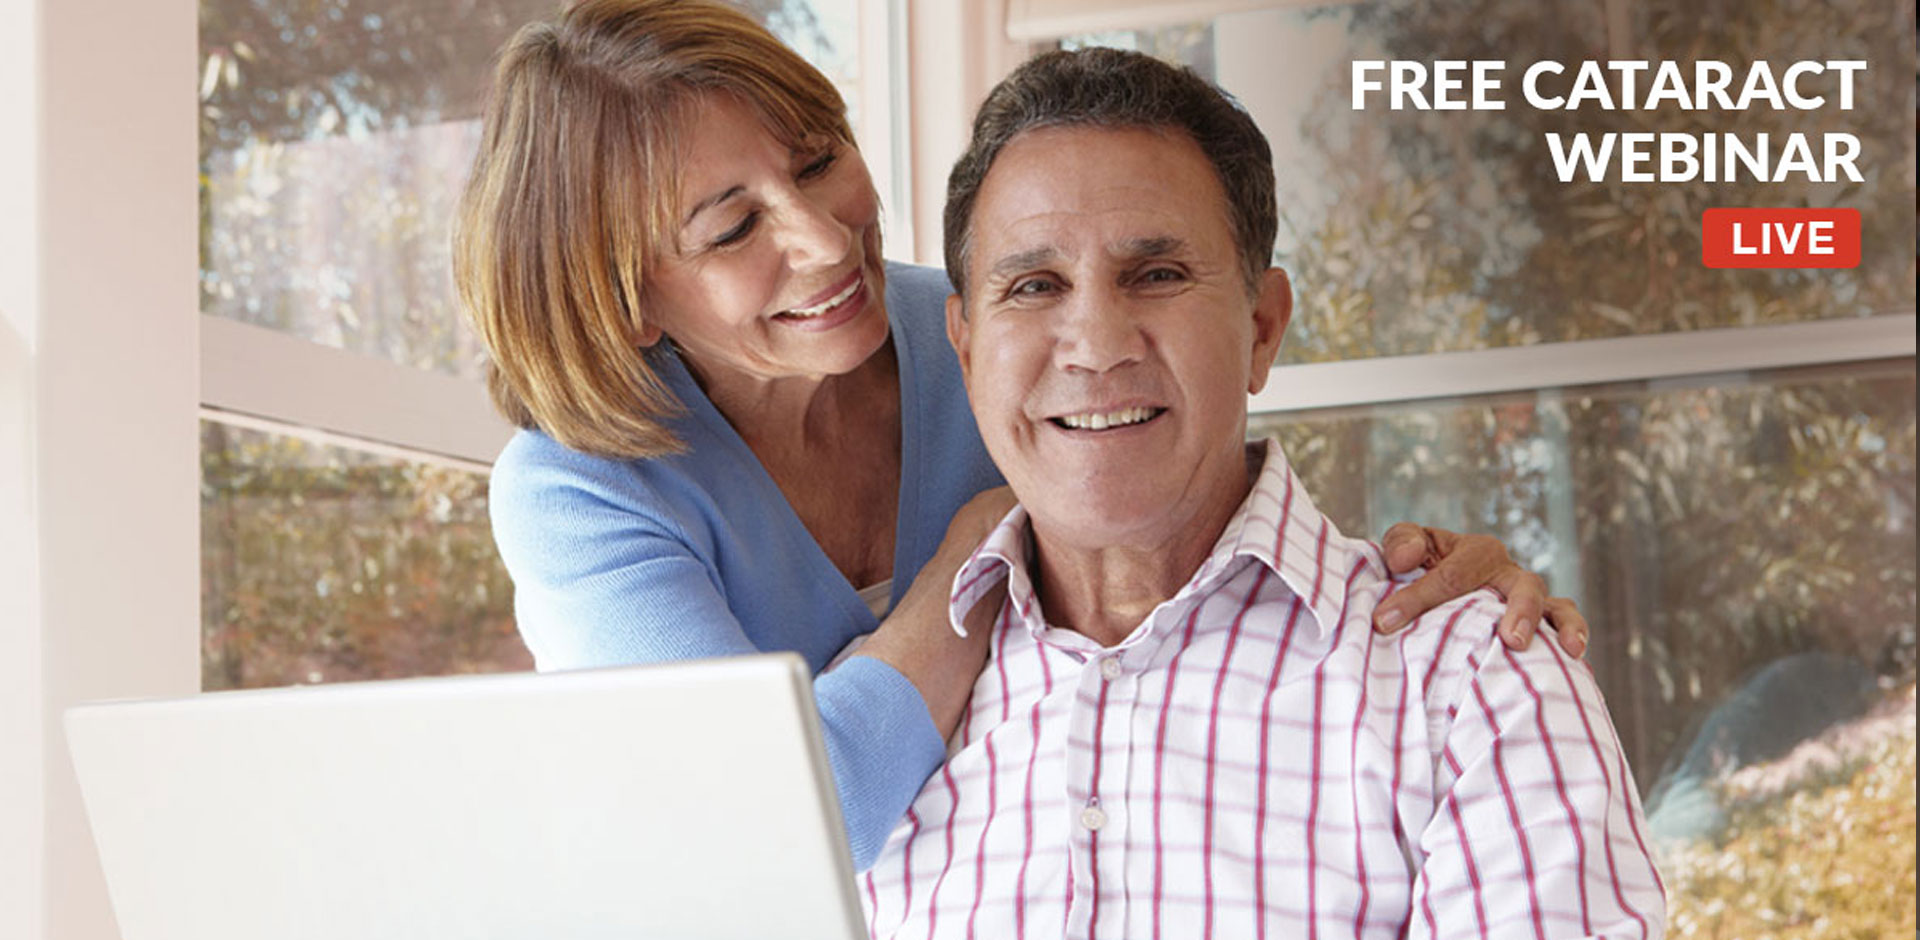 Middle Aged couple Watching The Free Laser Cataract Webinar